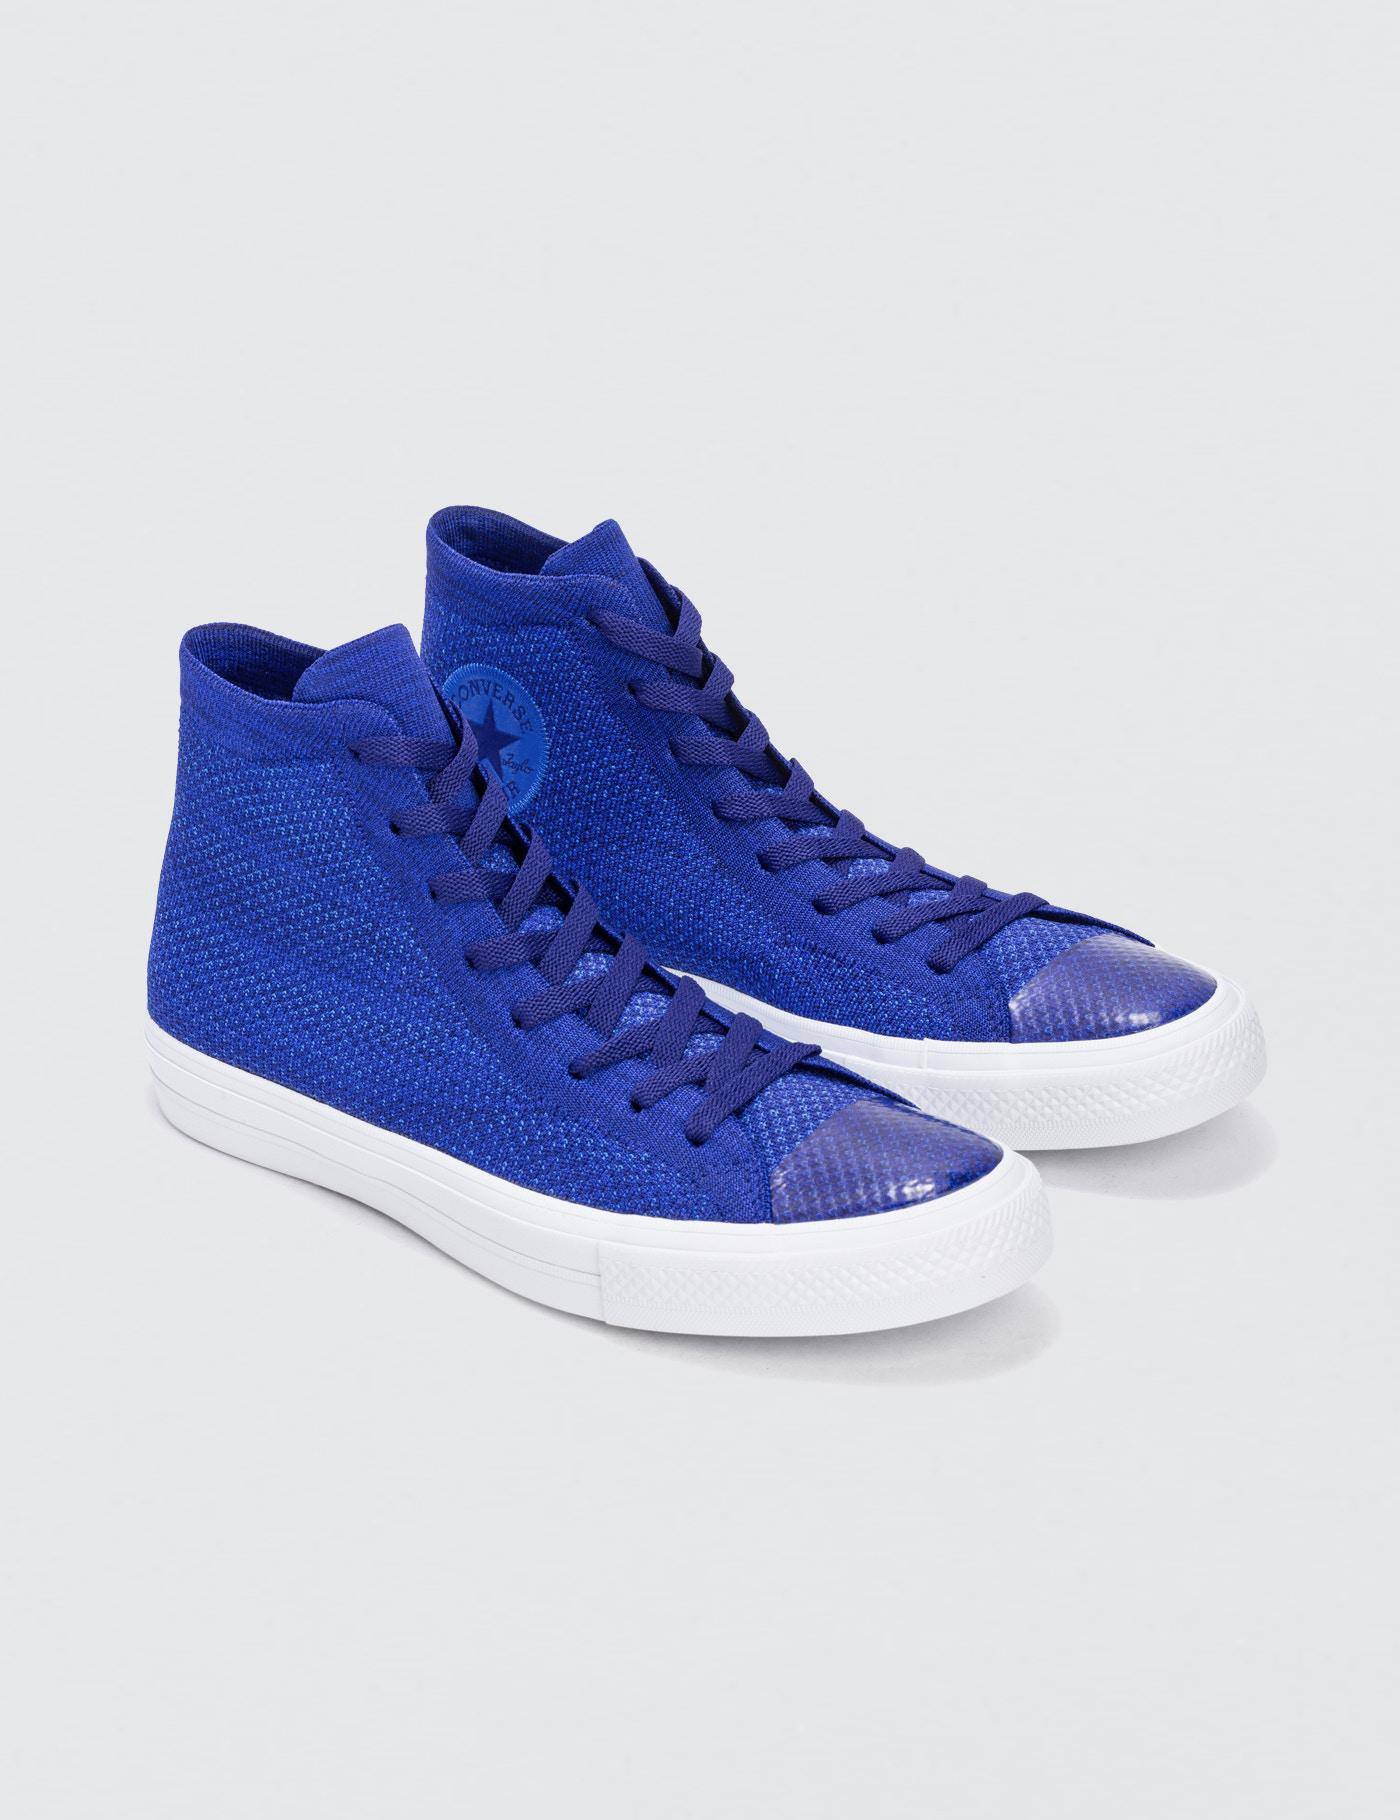 6329a80dc7c3d6 Lyst - Converse Chuck Taylor All Star X Nike Flyknit in Blue for Men